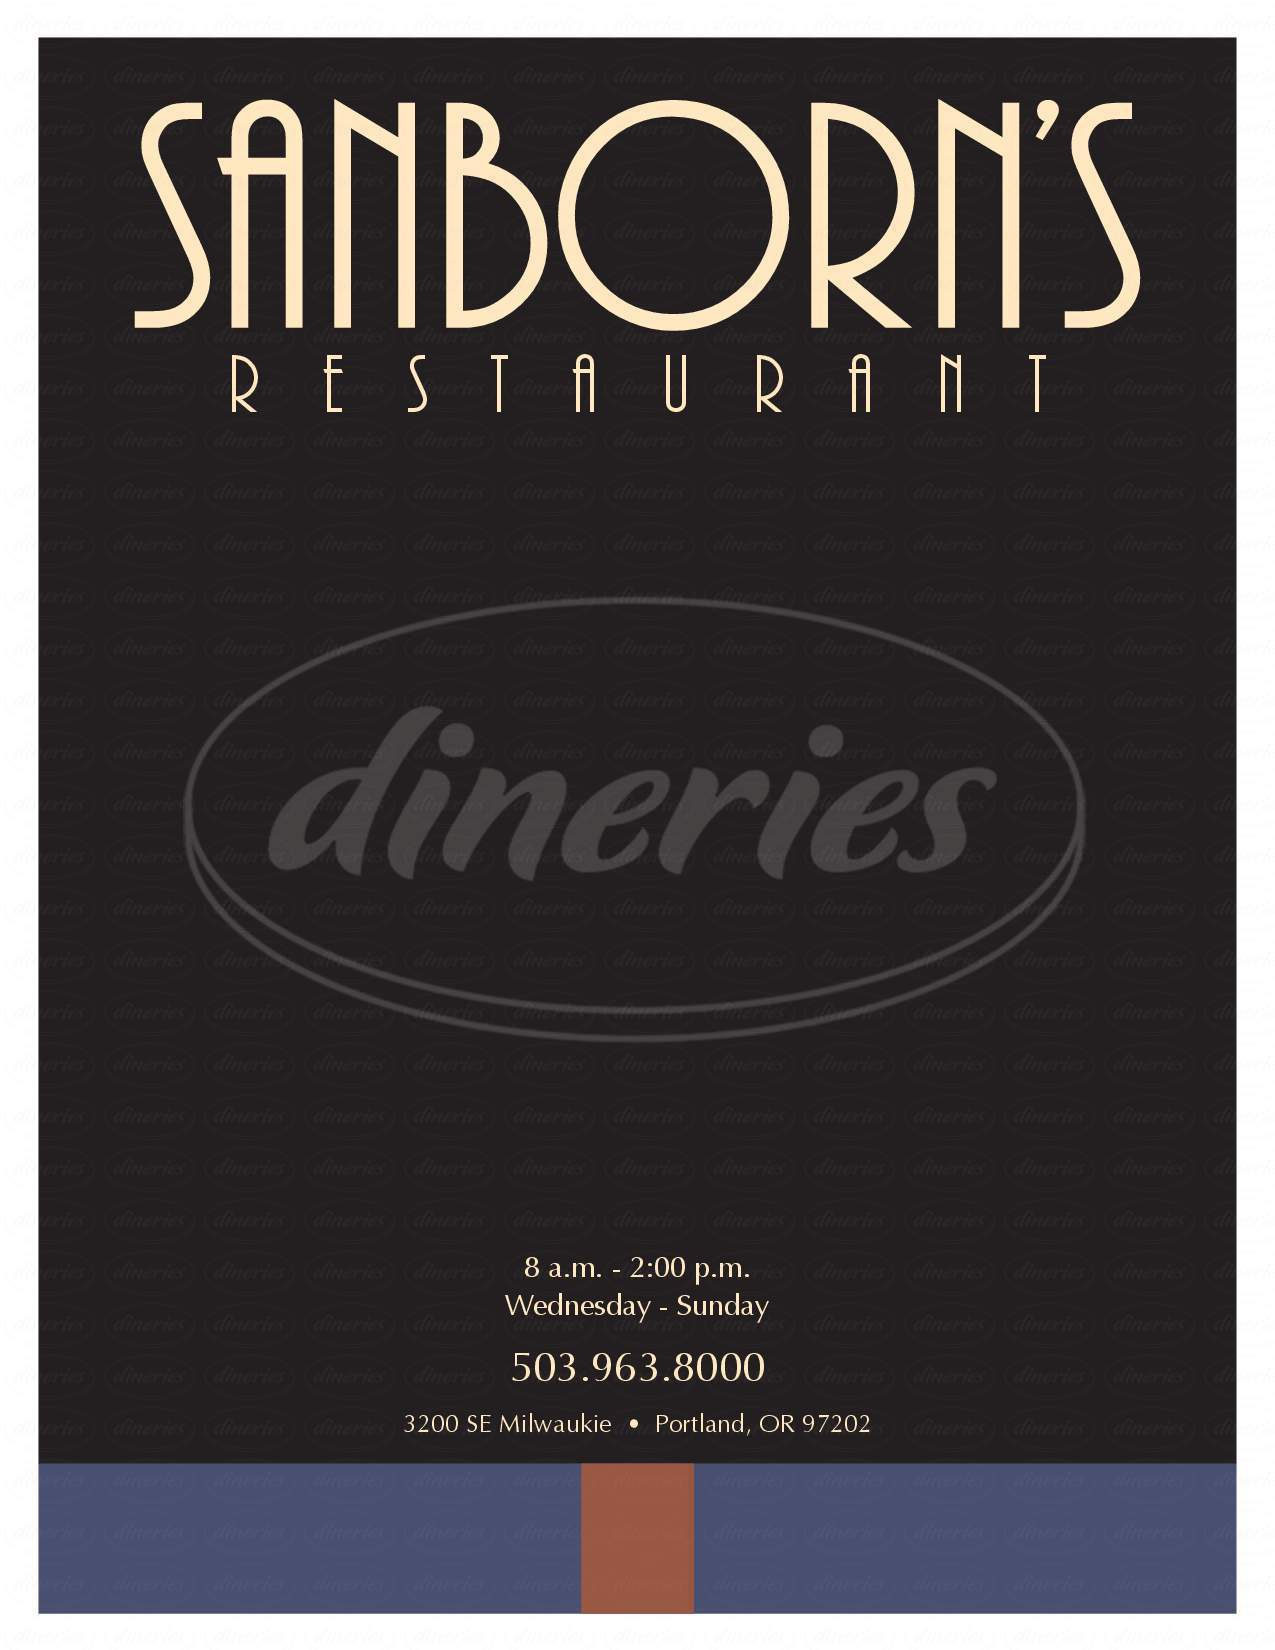 menu for Sanborn's